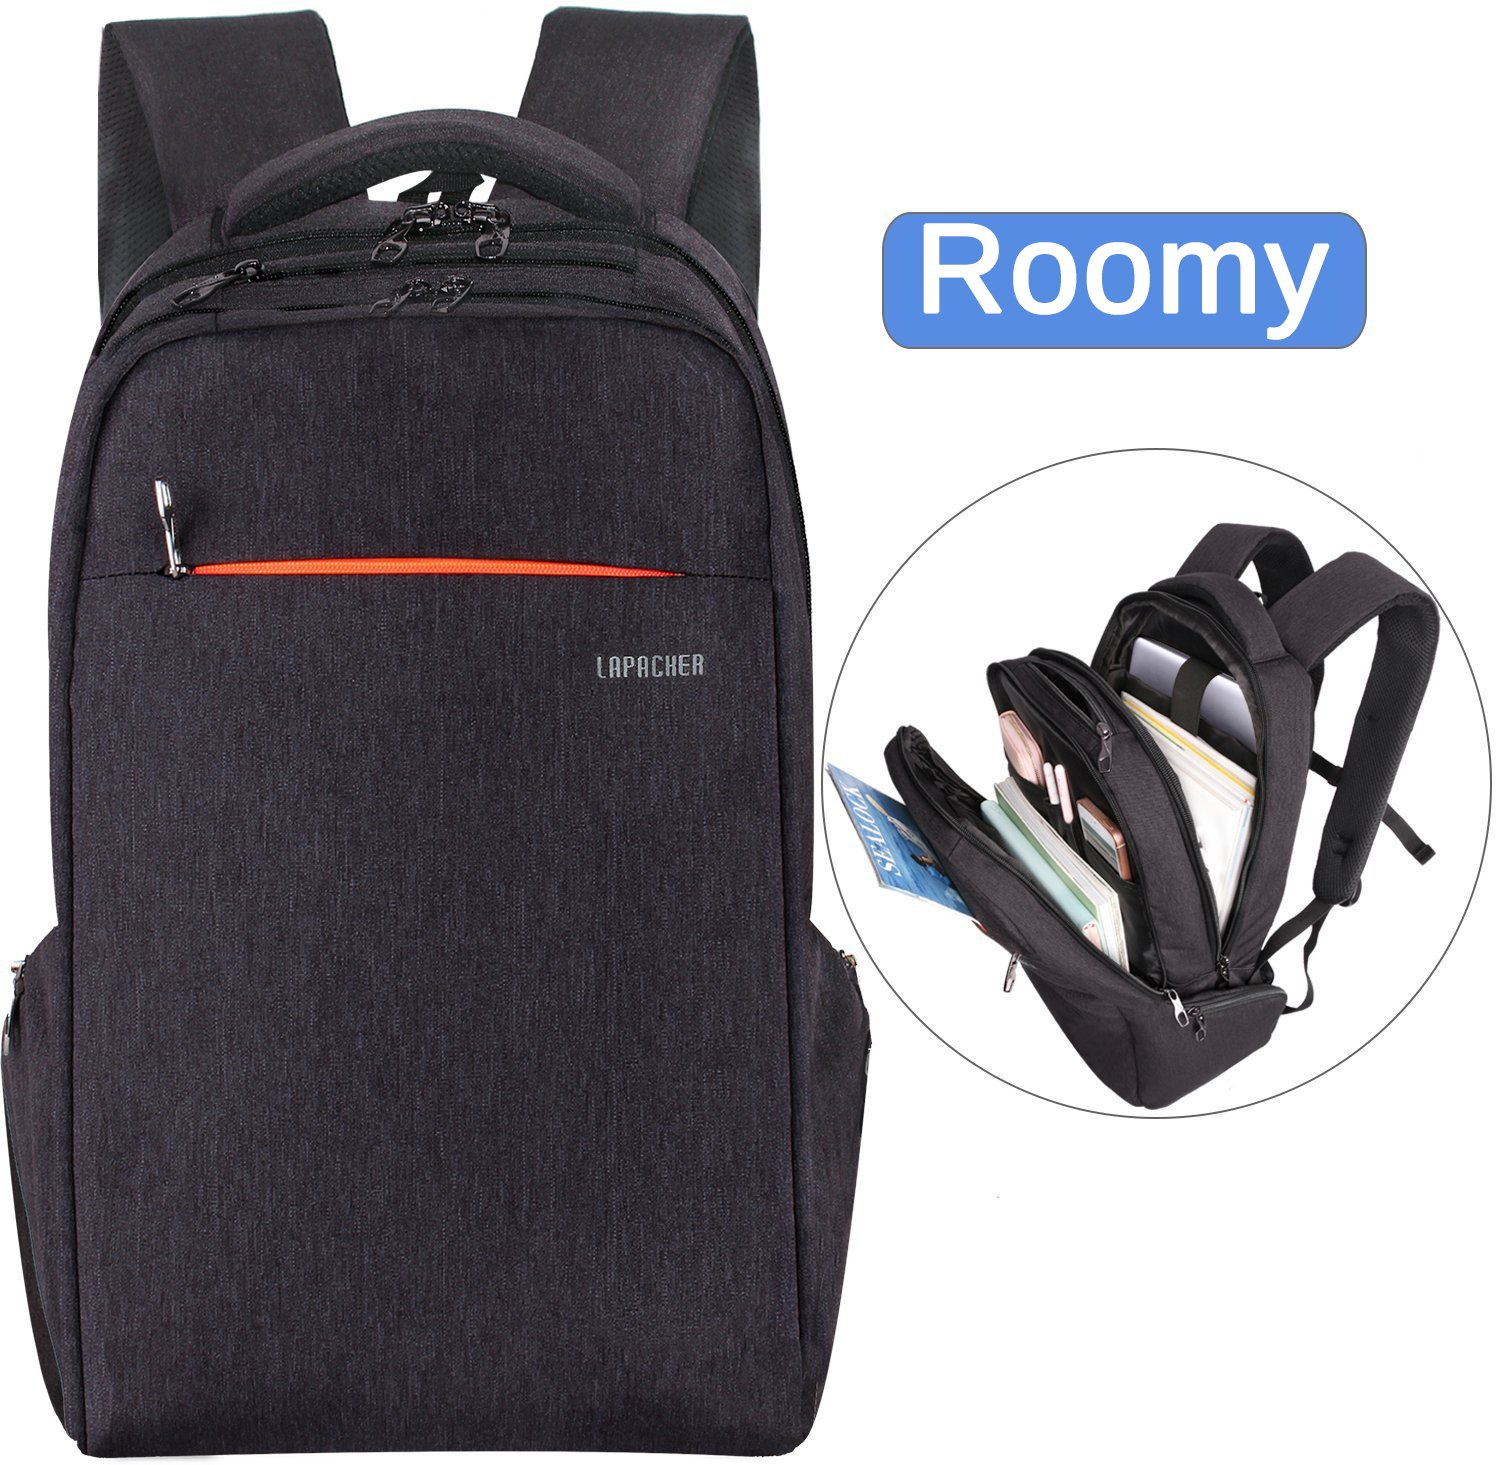 low priced f18e3 7bb18 Speck Business Travel Laptop Backpack | Sabis Bulldog Athletics